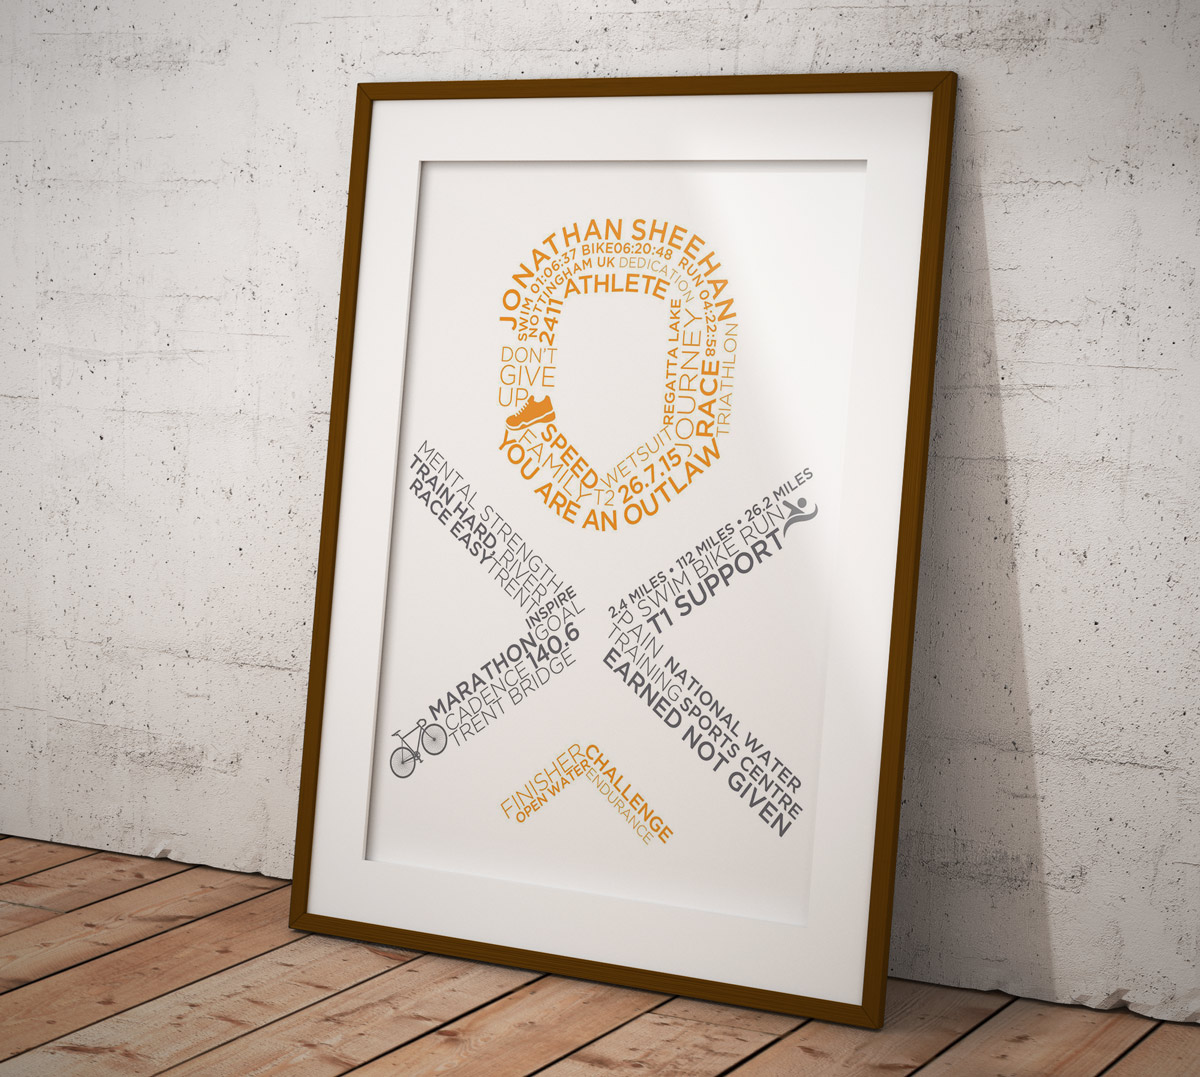 Buy Your Own Personalised & Customised Typographic Outlaw or IronMan Poster - Outlaw Logo Poster Style 1